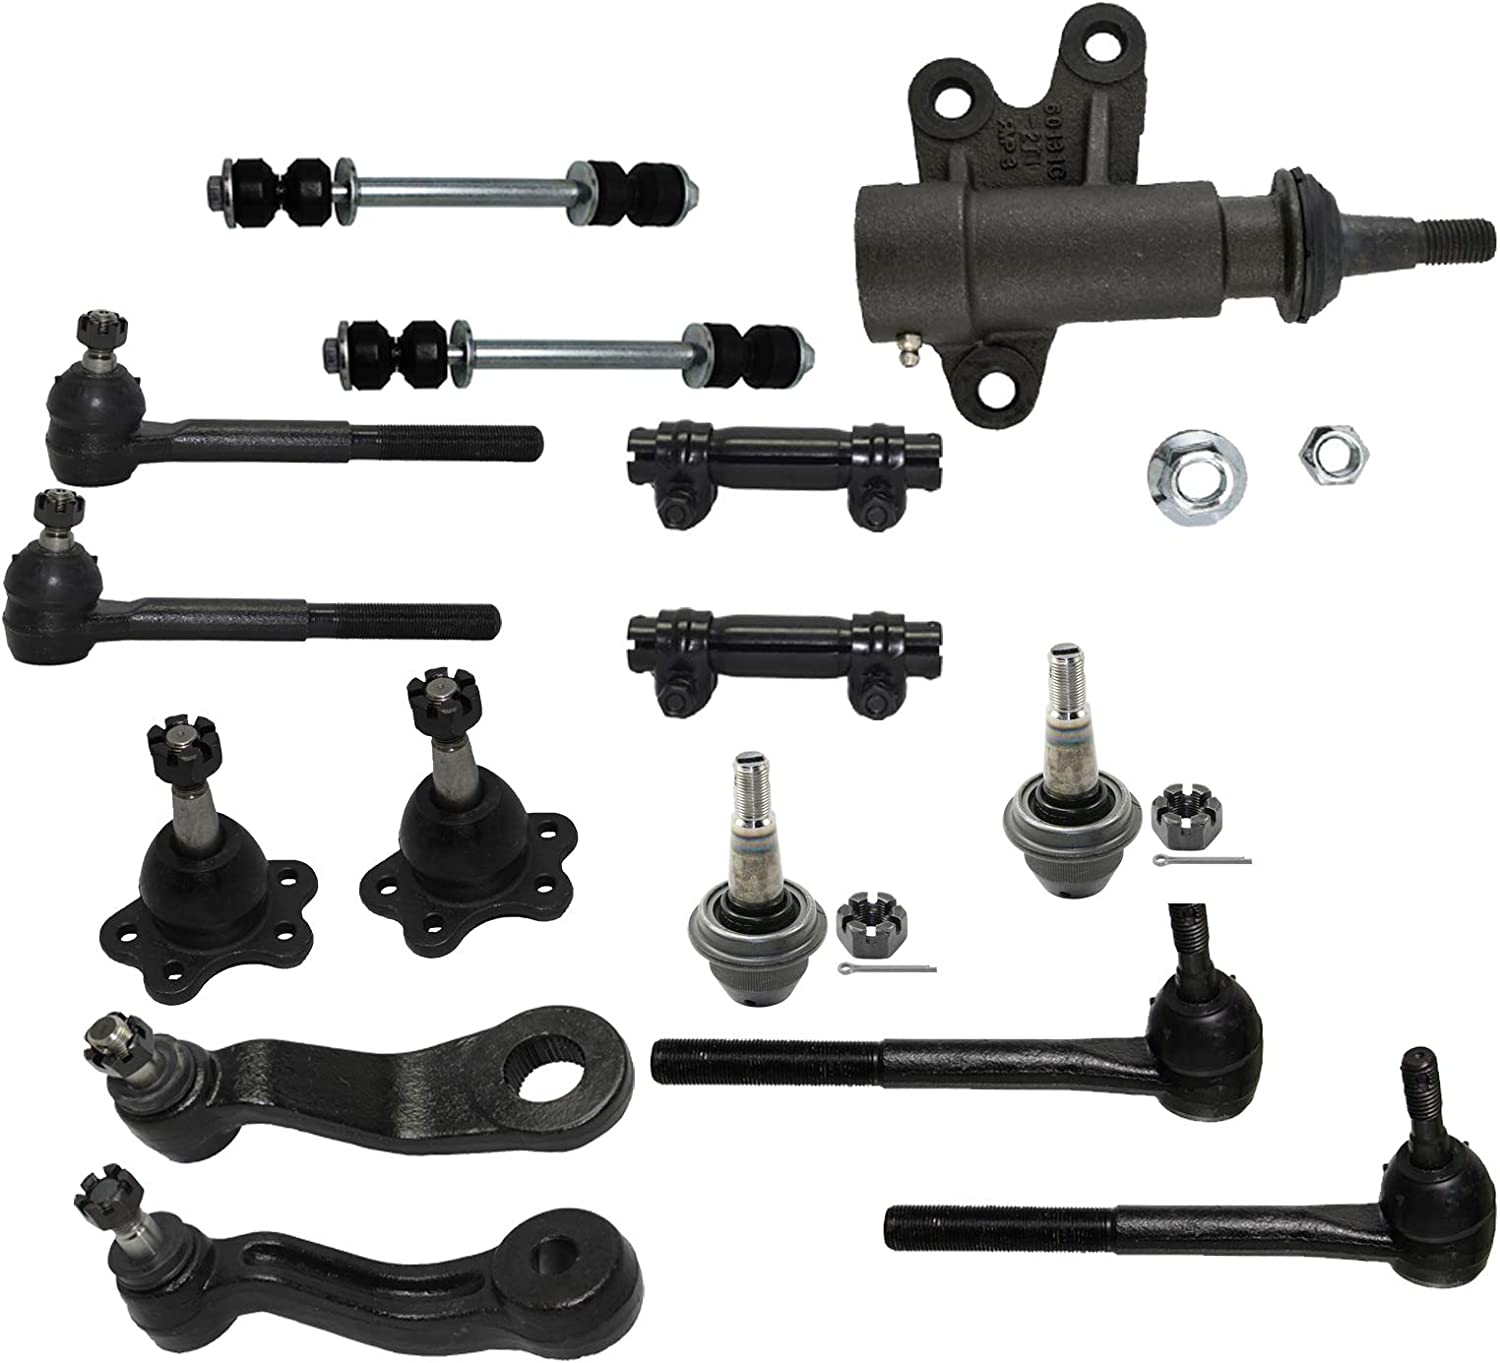 for 1992-2000 Chevy GMC 2WD Inner /& Outer Tie Rods Pitman Arm Sway Bars Idler Arm 13S1201420 13pc Set Tie Rod Sleeves Front Suspension Kit Lower Ball Joints Detroit Axle